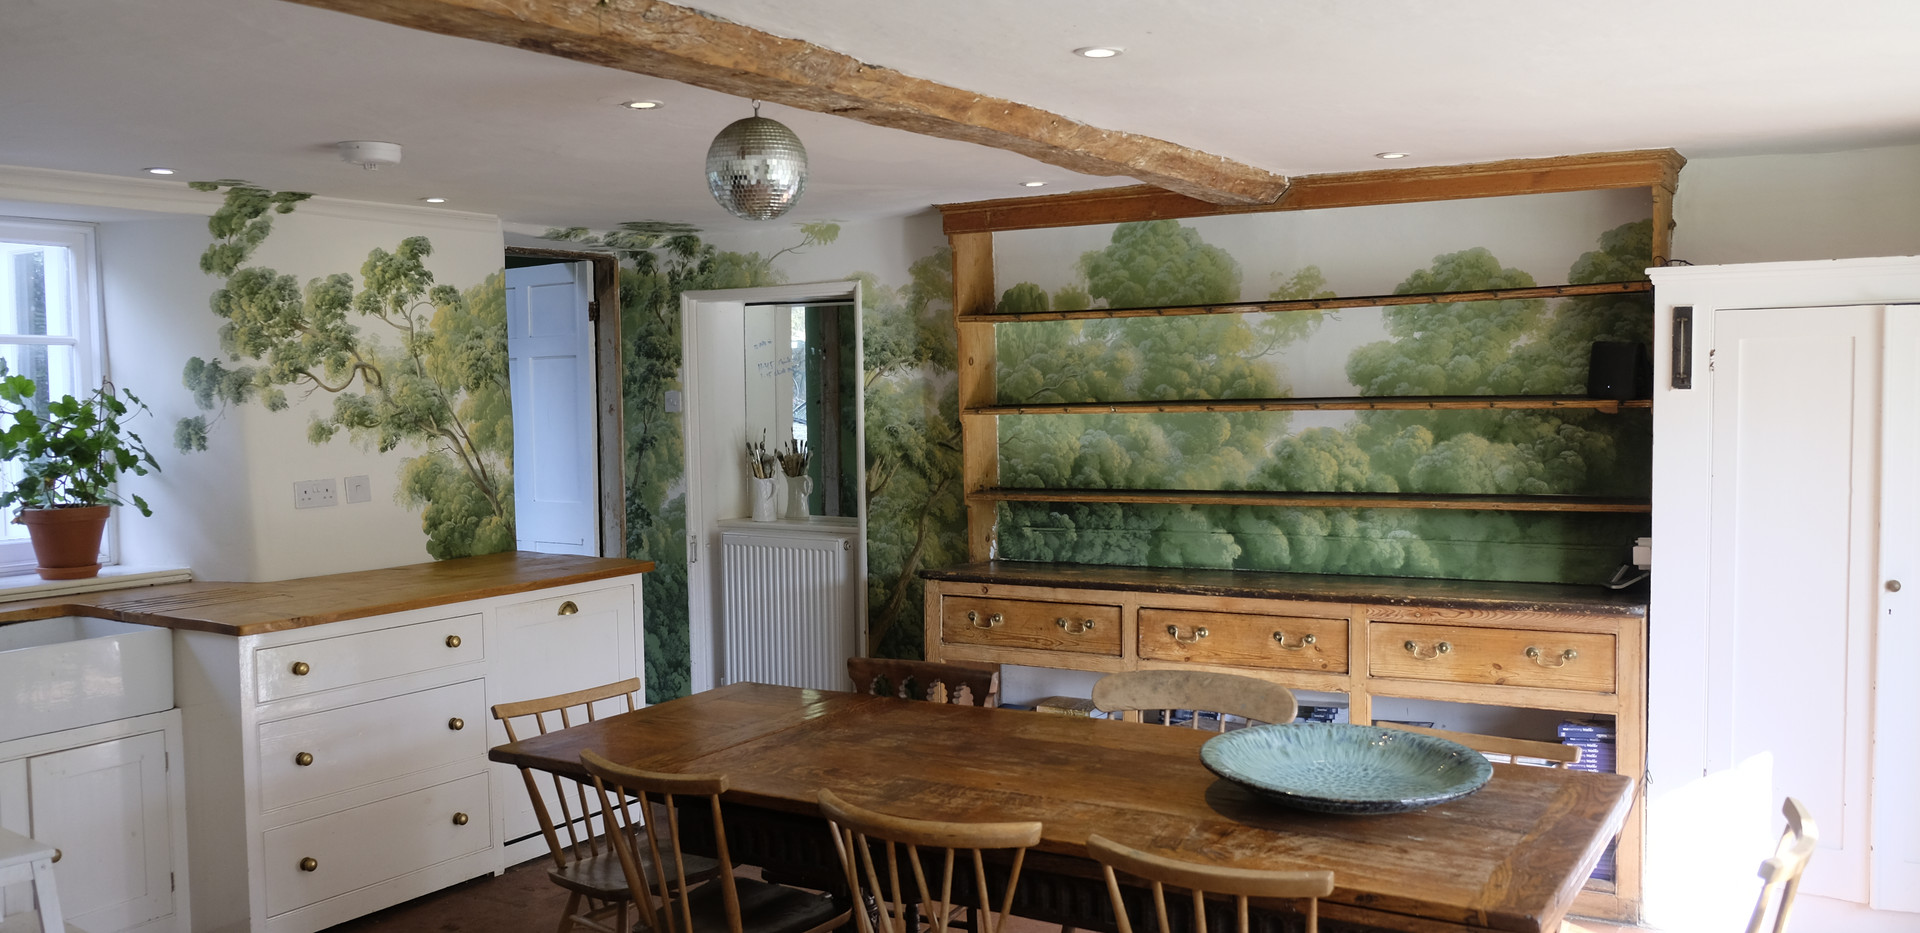 An Eighteenth century Welsh Dresser and crisp white custom fittings in the kitchen create a classic English but rather hip ambience which the various shades of my green foliage are designed to set off.